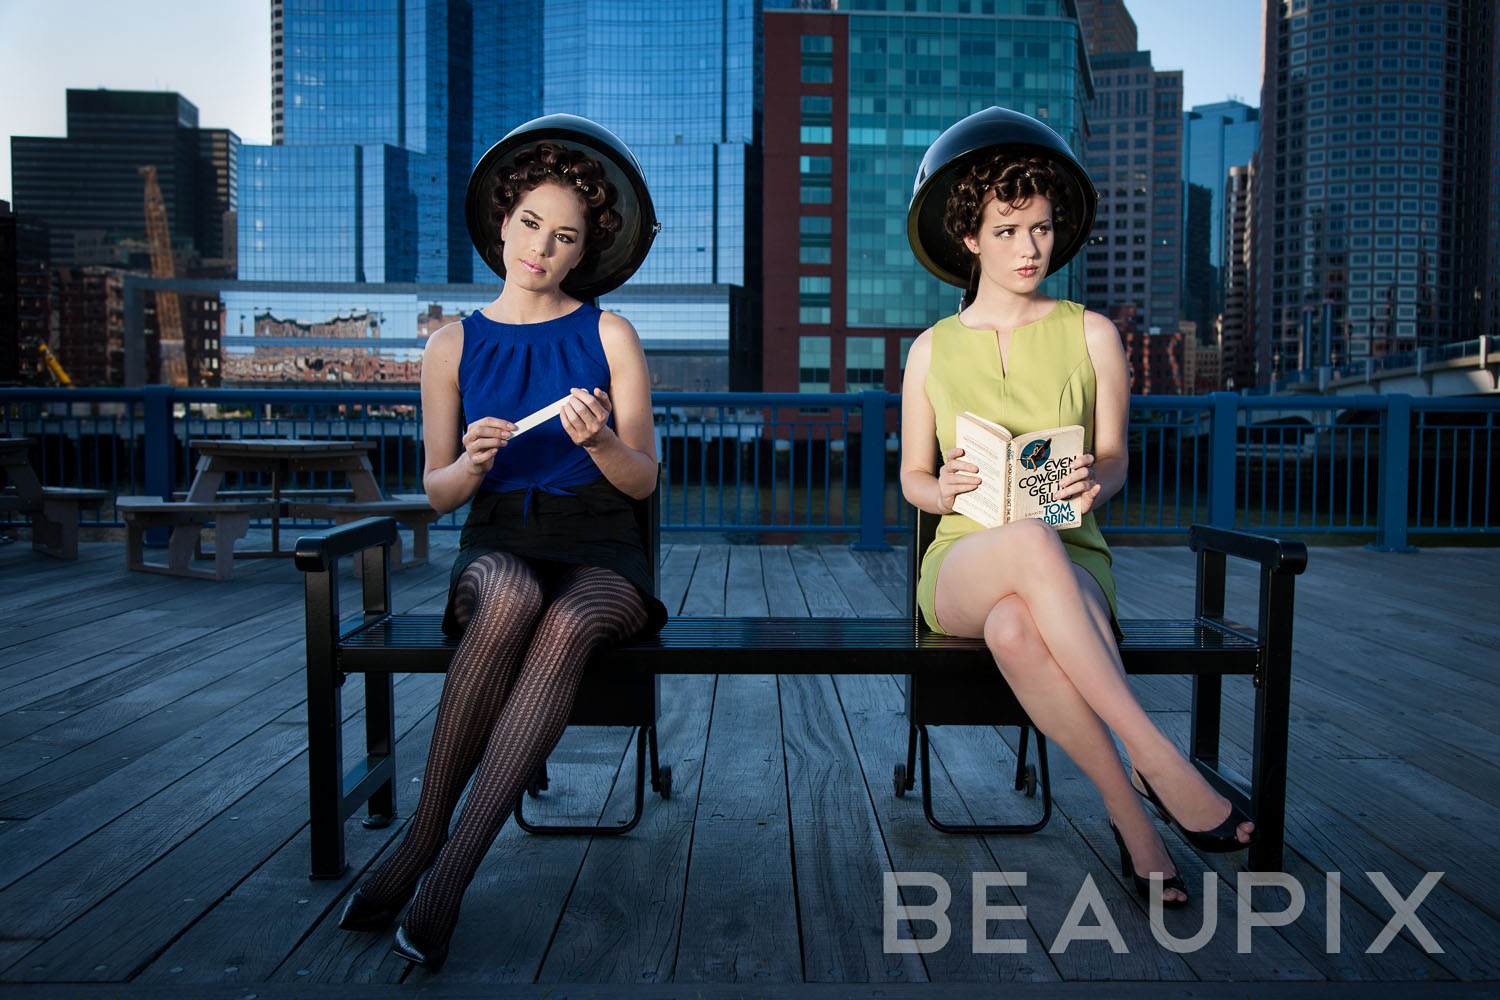 Boston Fashion photographer Ryuji Suzuki of BEAUPIX: editorial, advertising, conceptual & lookbook